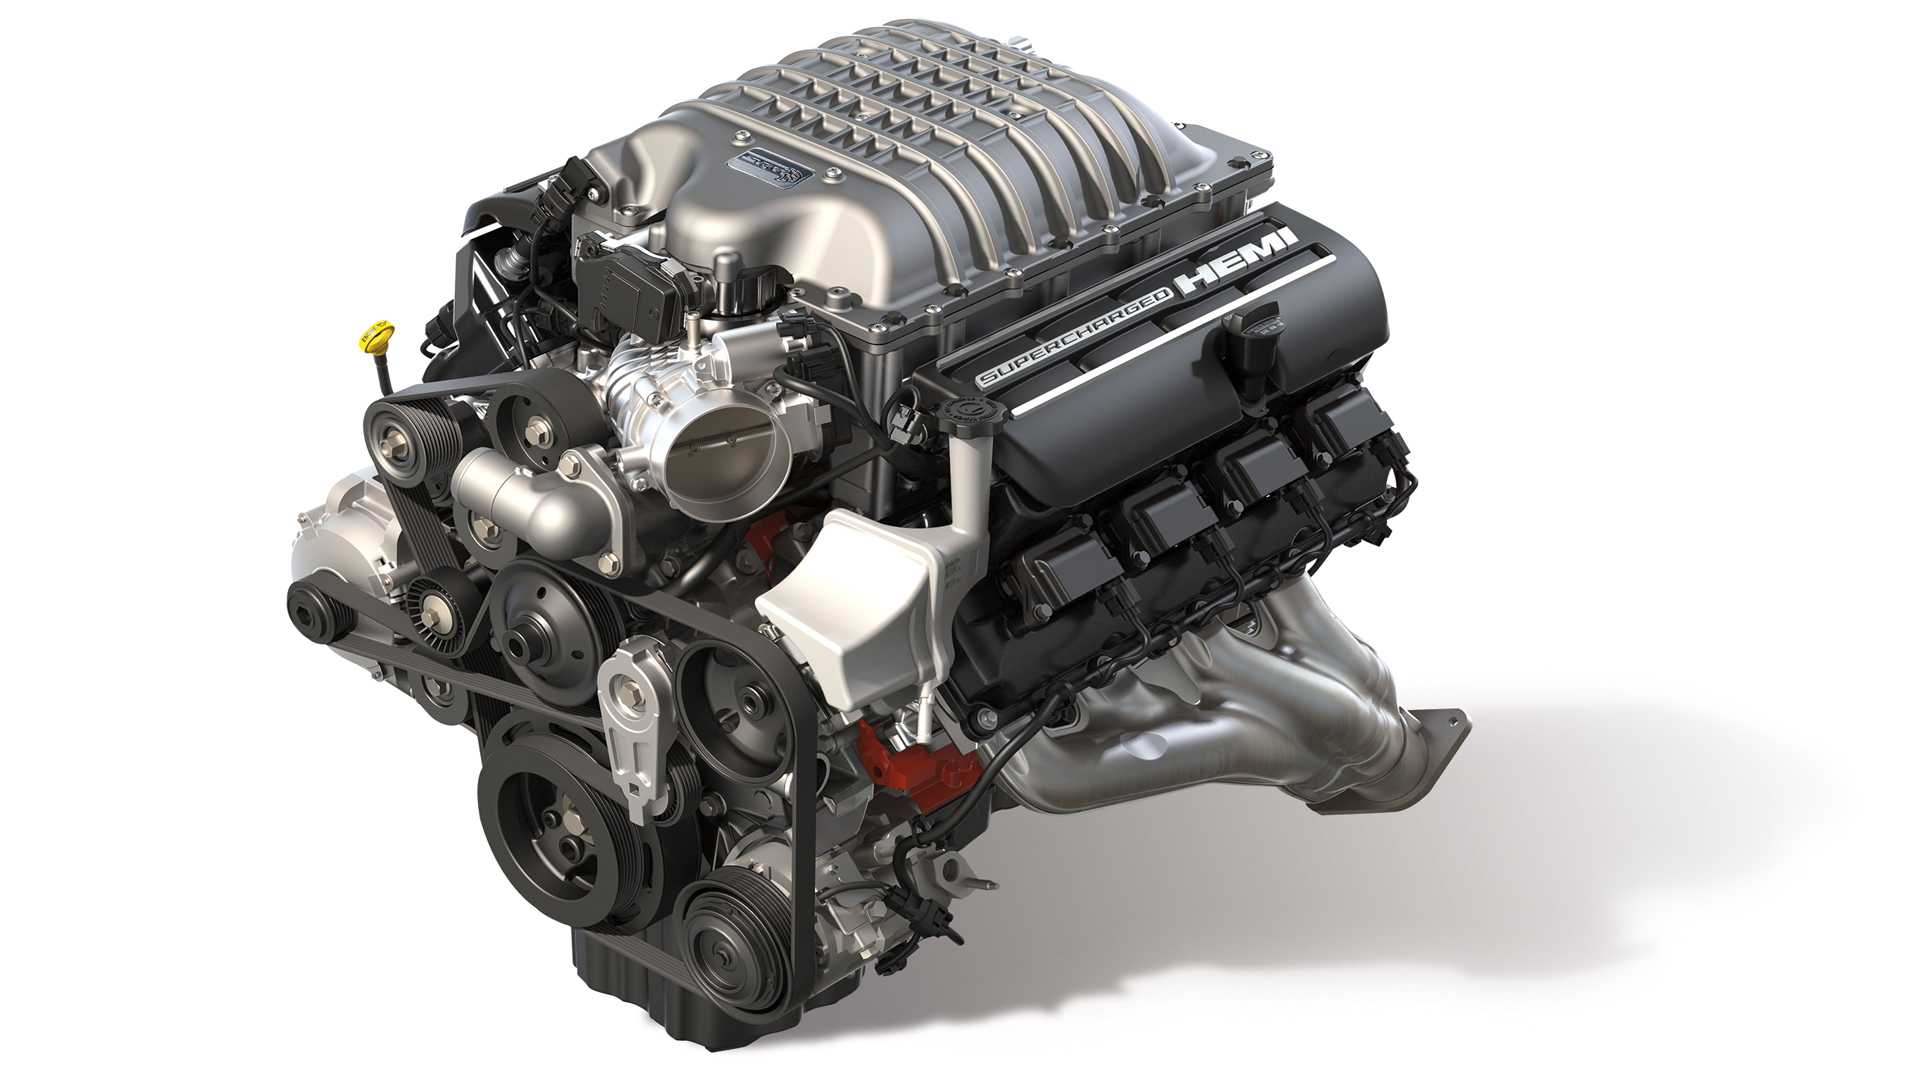 Dodge Hellcat Redeye V8 Now Available As Hellcrate Engine From Mopar